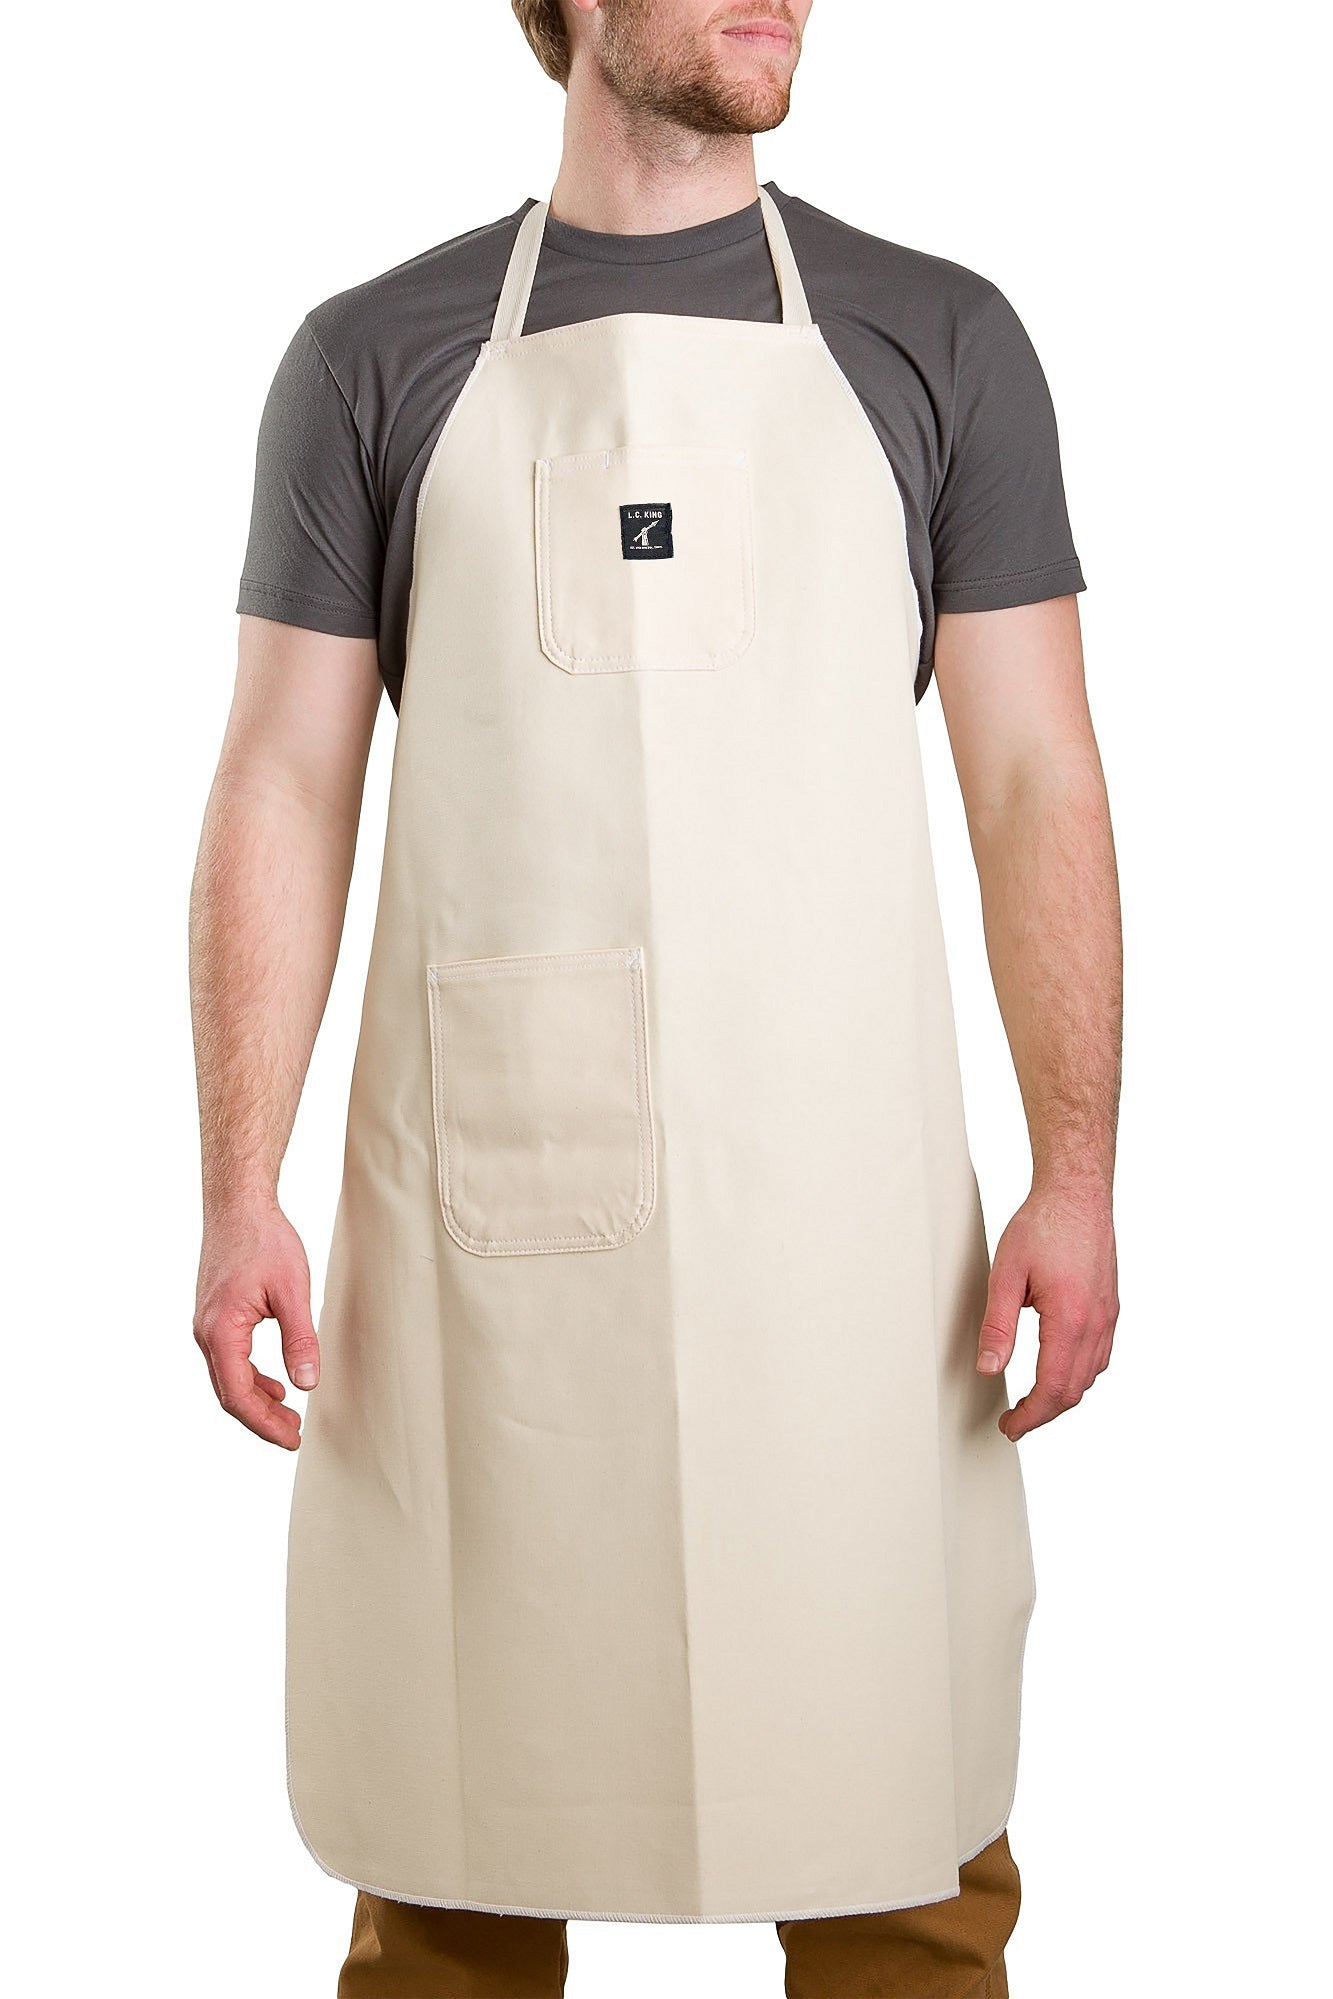 White Drill Shop Apron